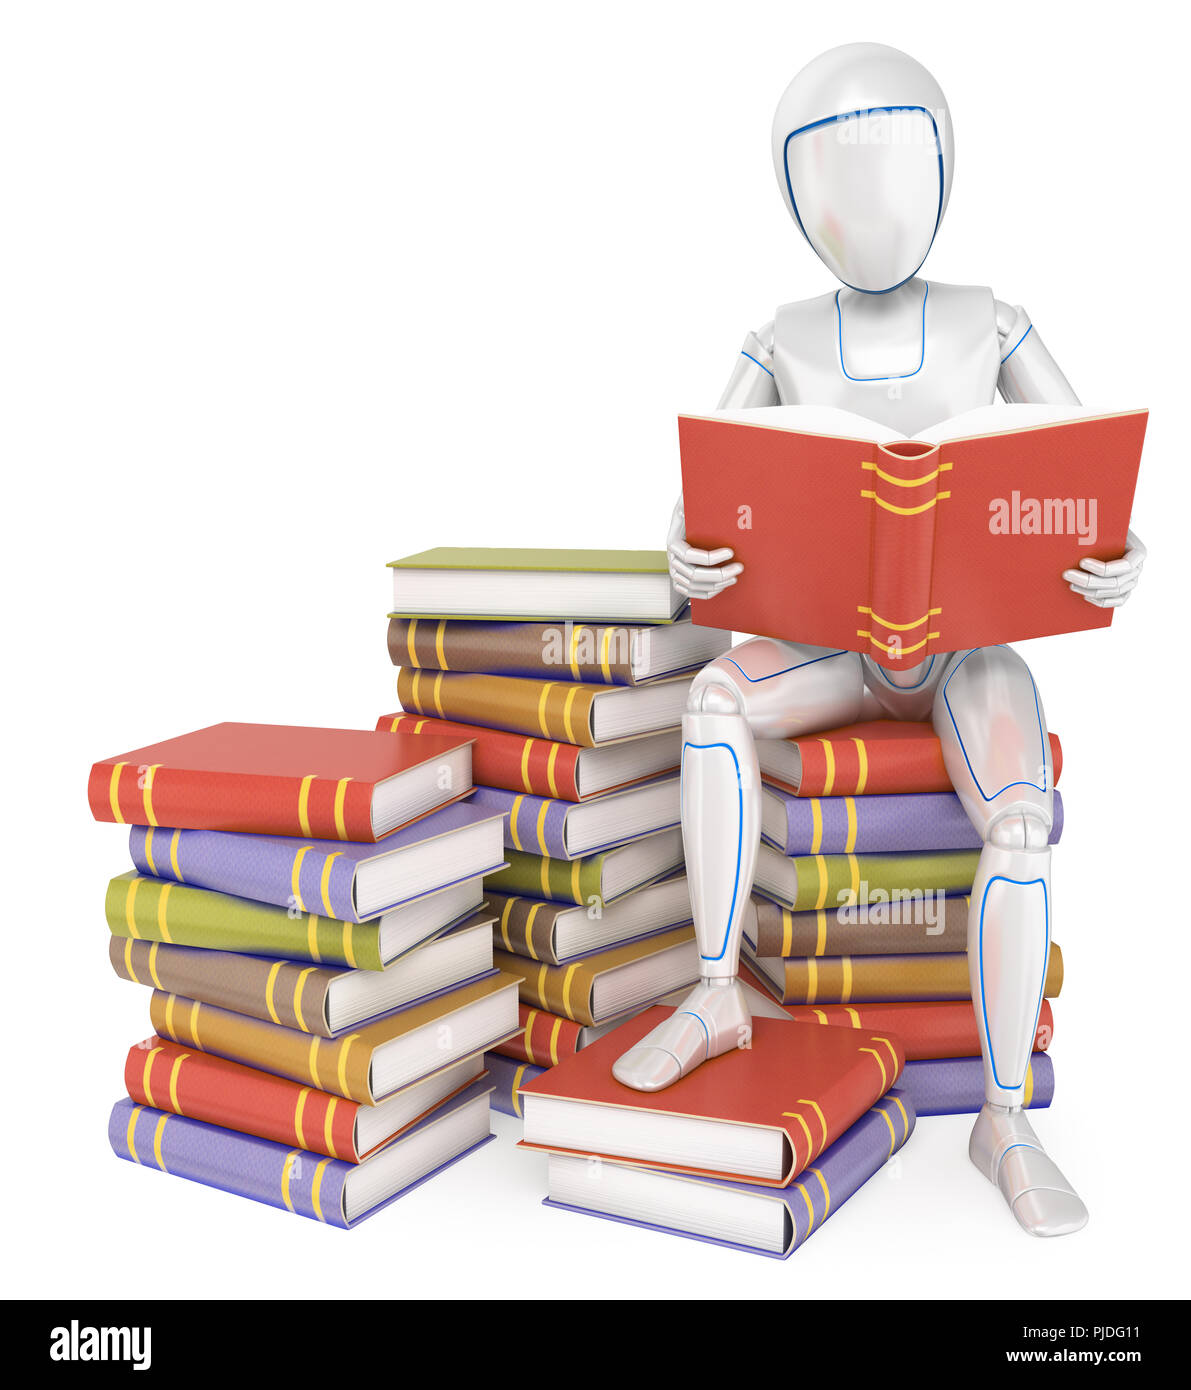 3d futuristic android illustration. Humanoid robot sitting on a pile of book reading. Isolated white background. - Stock Image